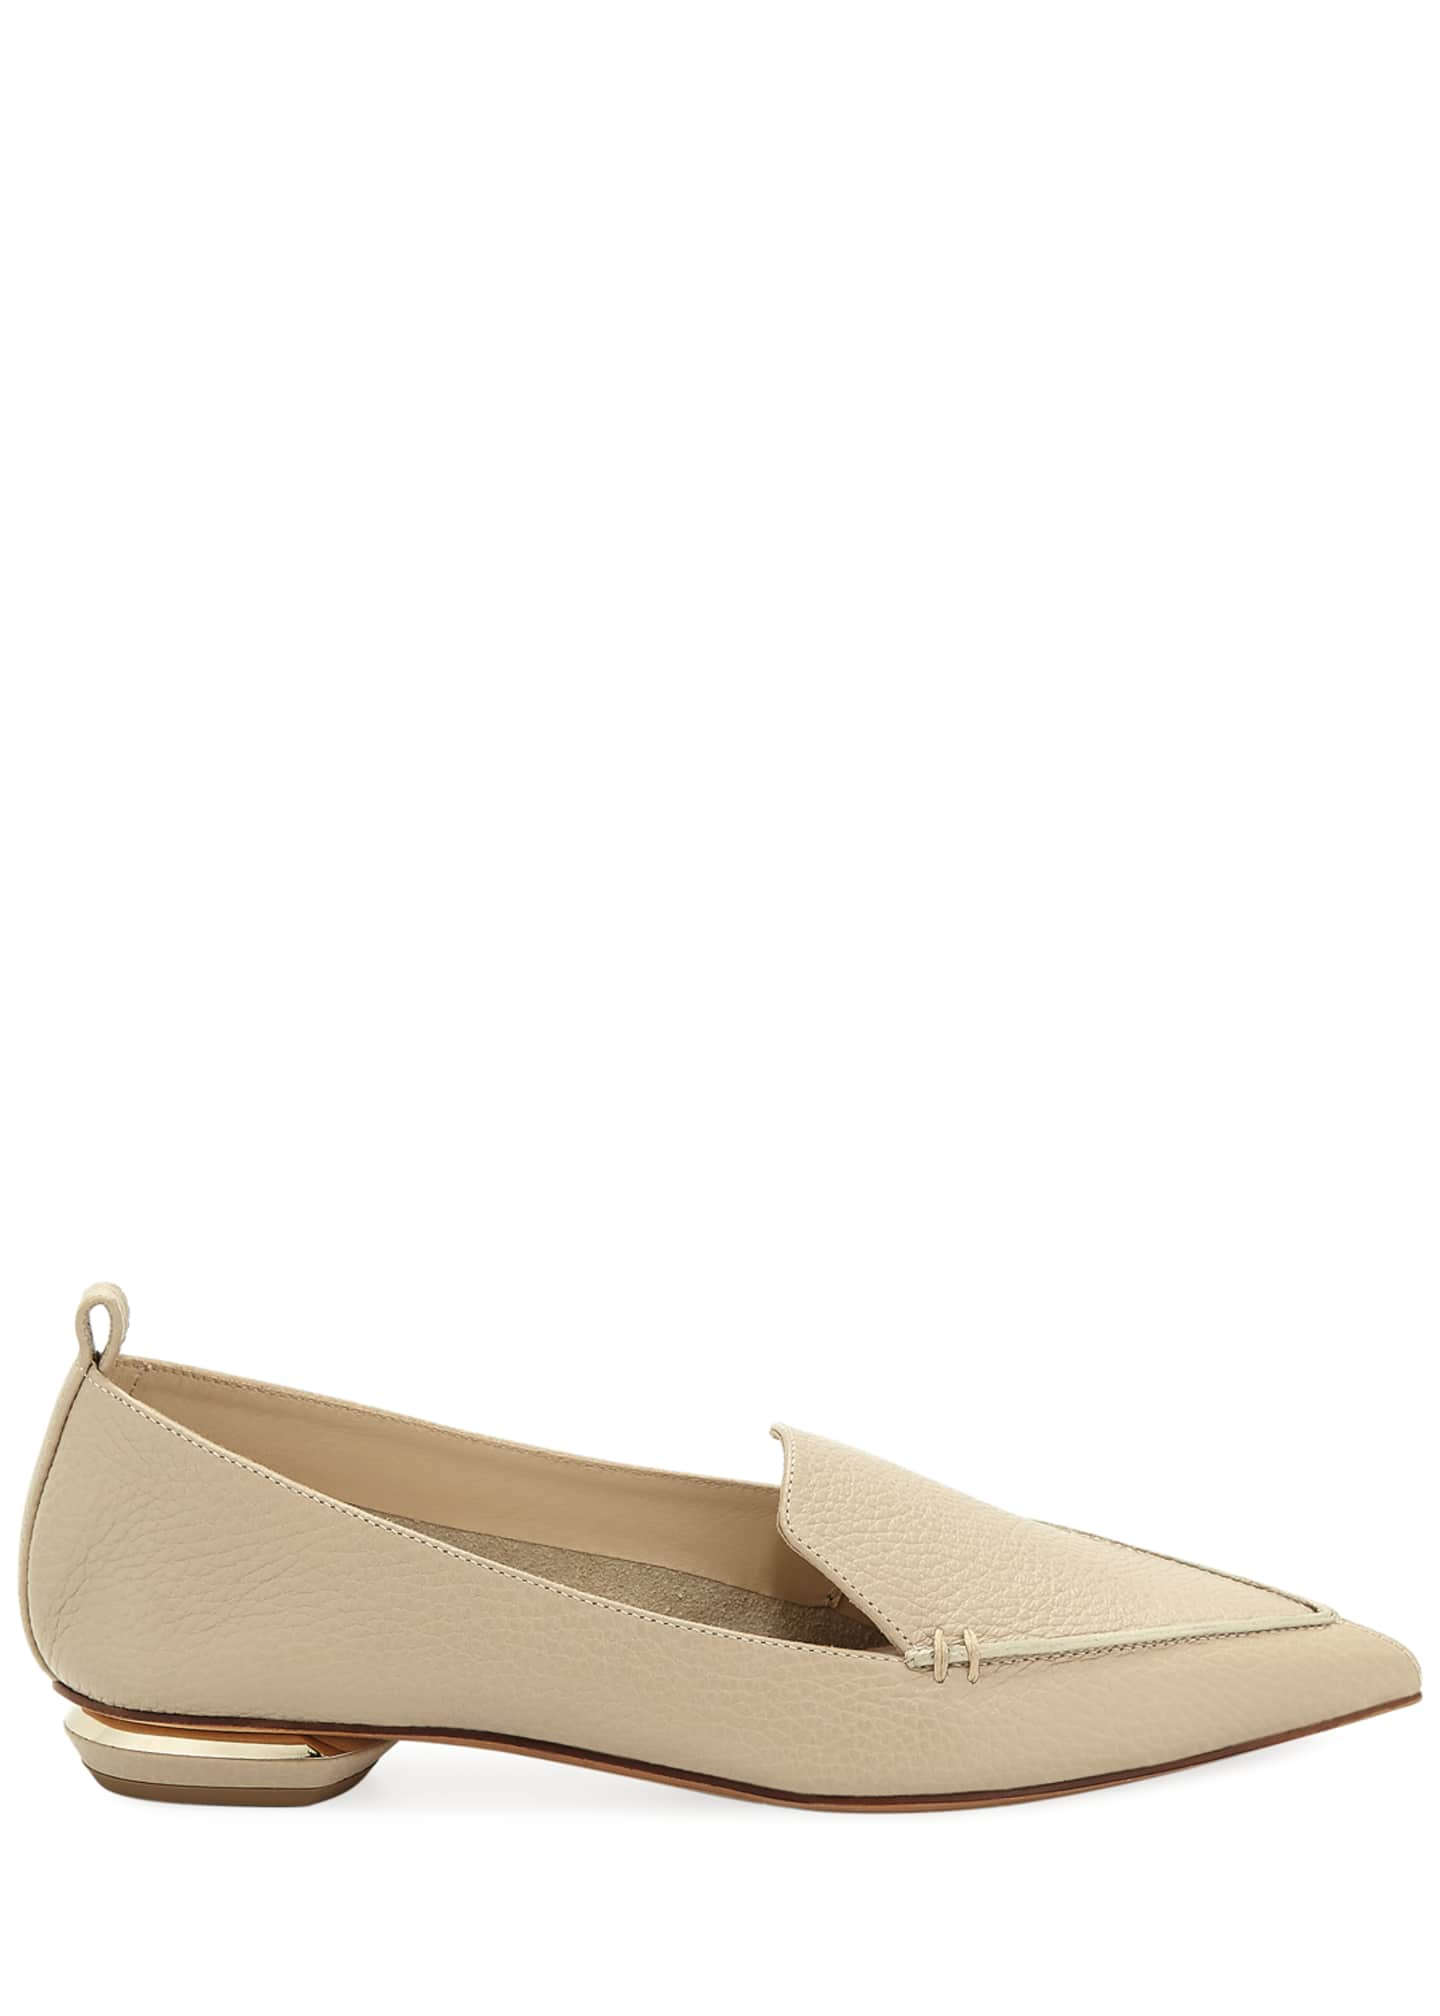 Image 2 of 3: Beya Leather Loafer, Sand